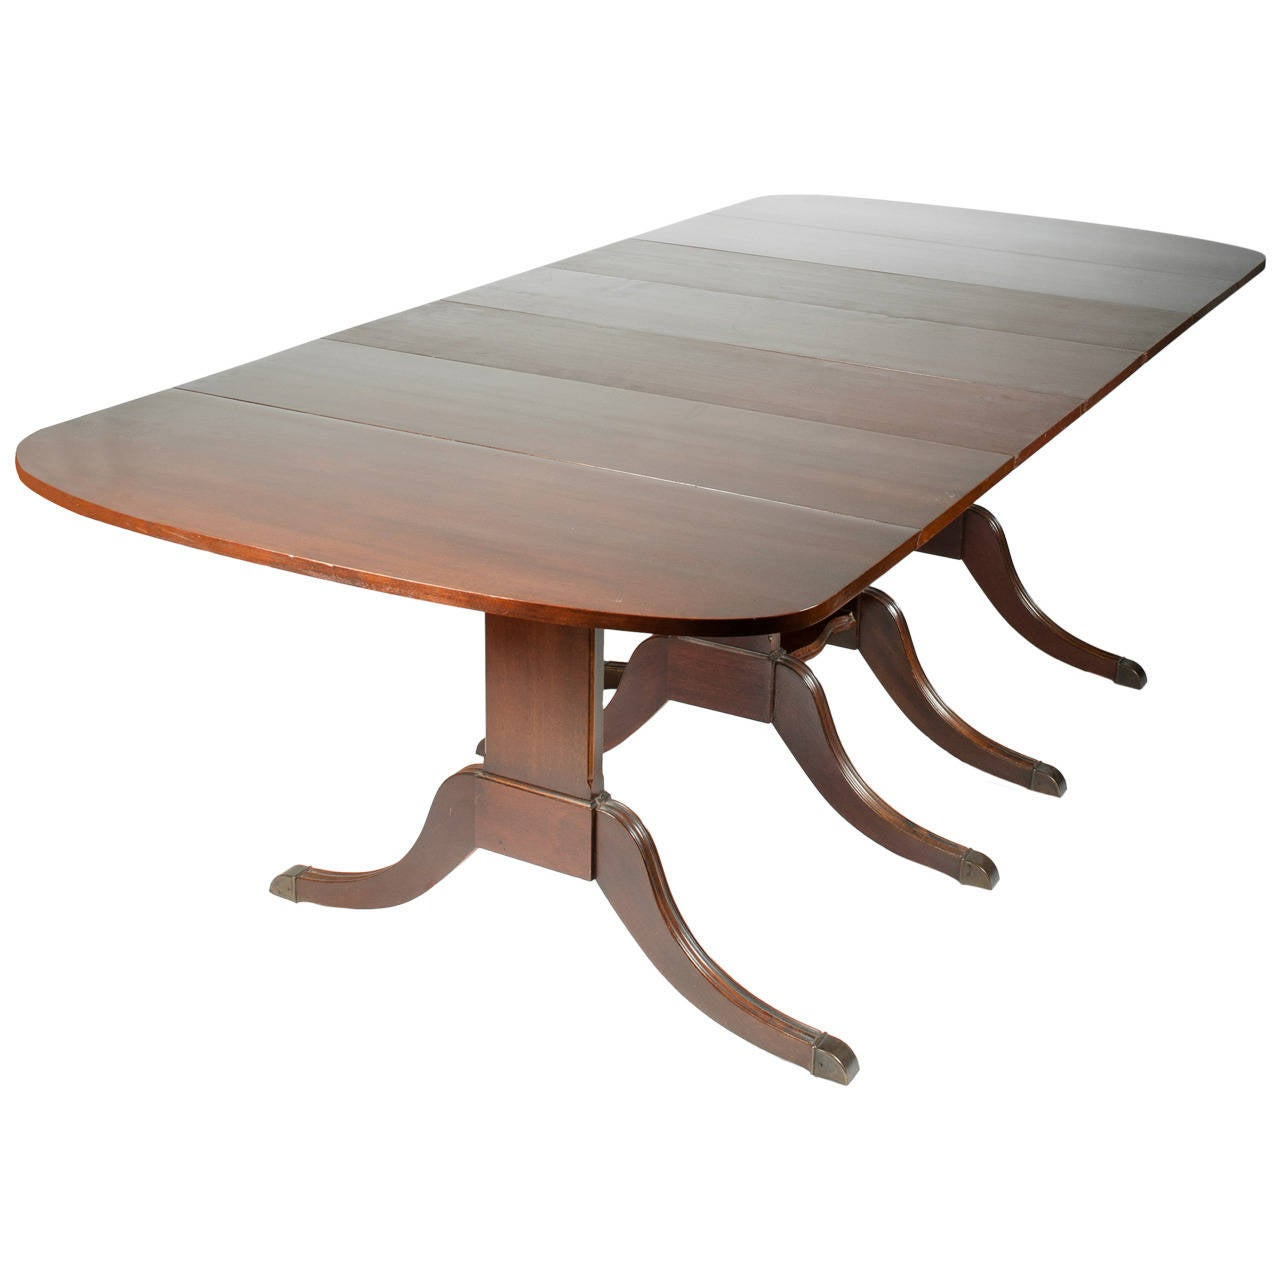 Duncan phyfe style drop leaf extension table for sale at for Dining room tables 1940s